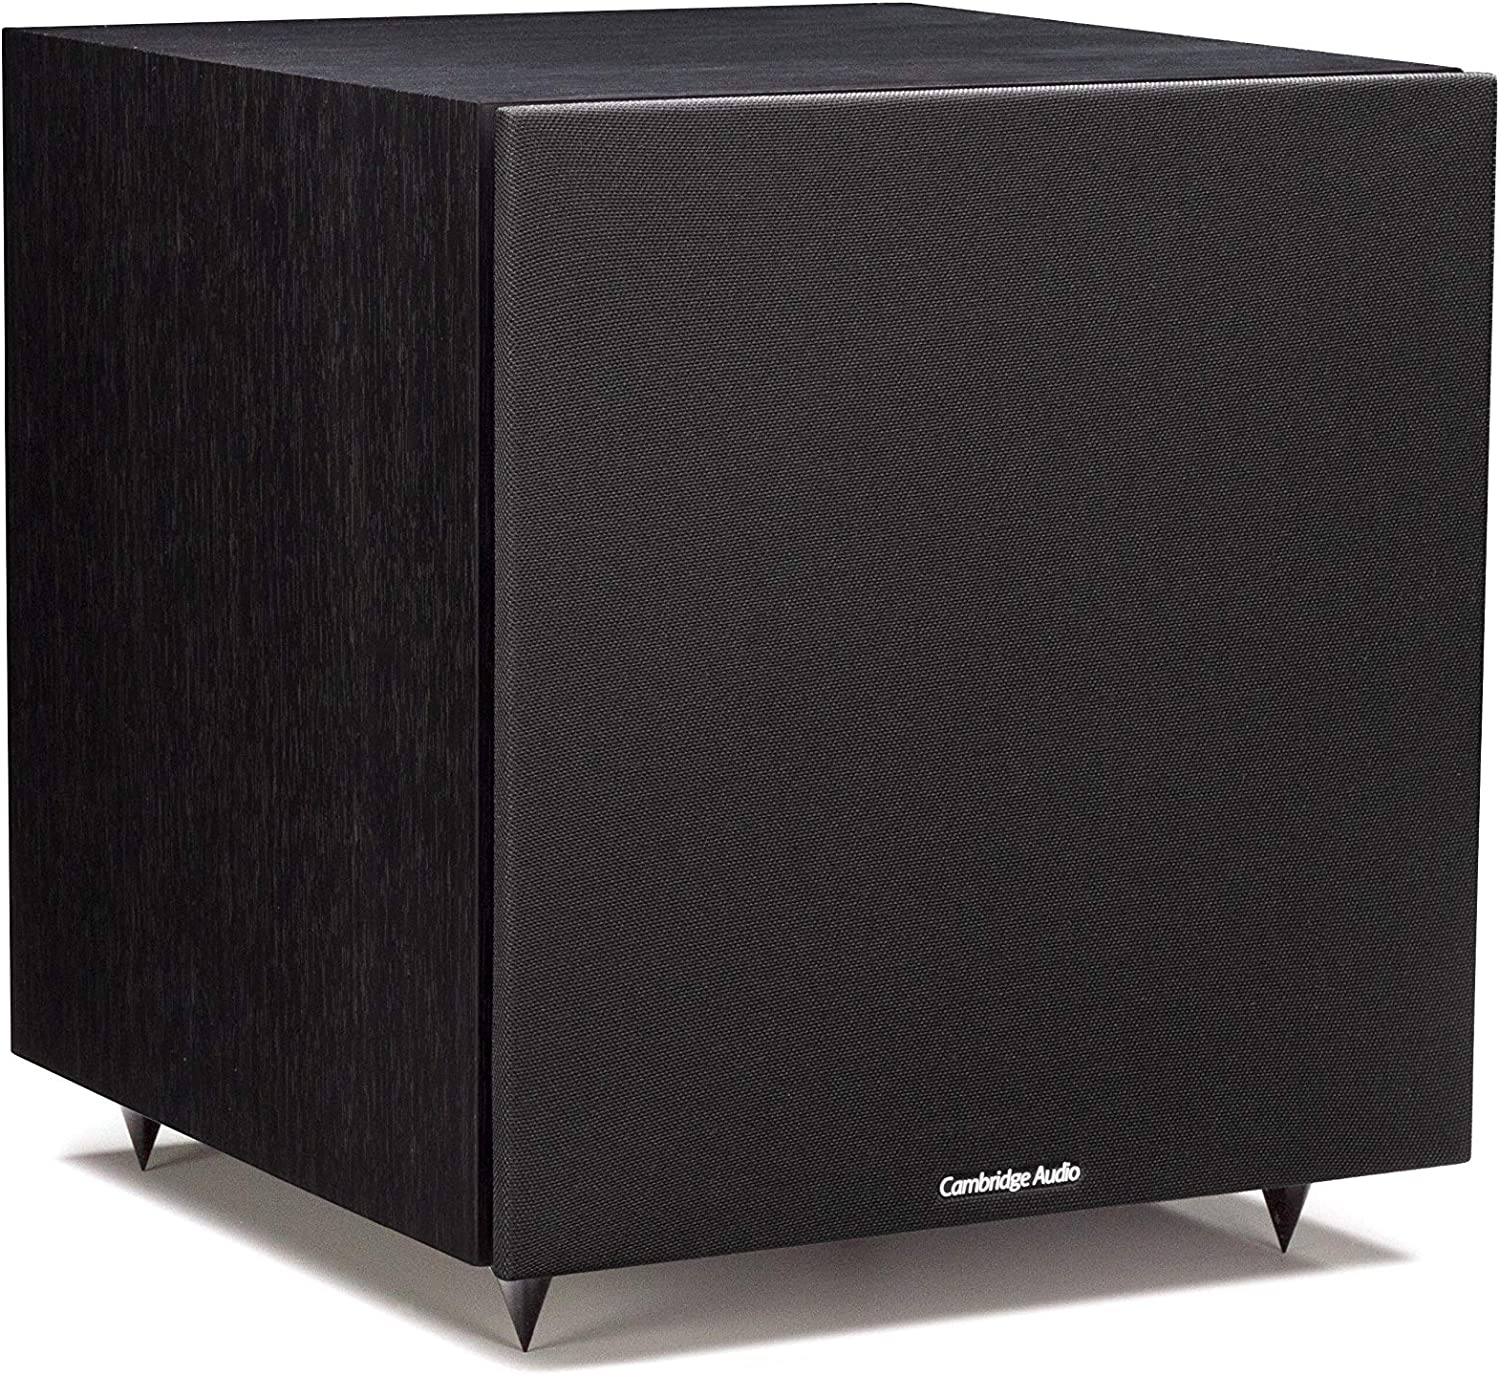 Cambridge Audio SX120   70 Watt Active Home Theater Subwoofer with 8 Inch Woofer (Black)